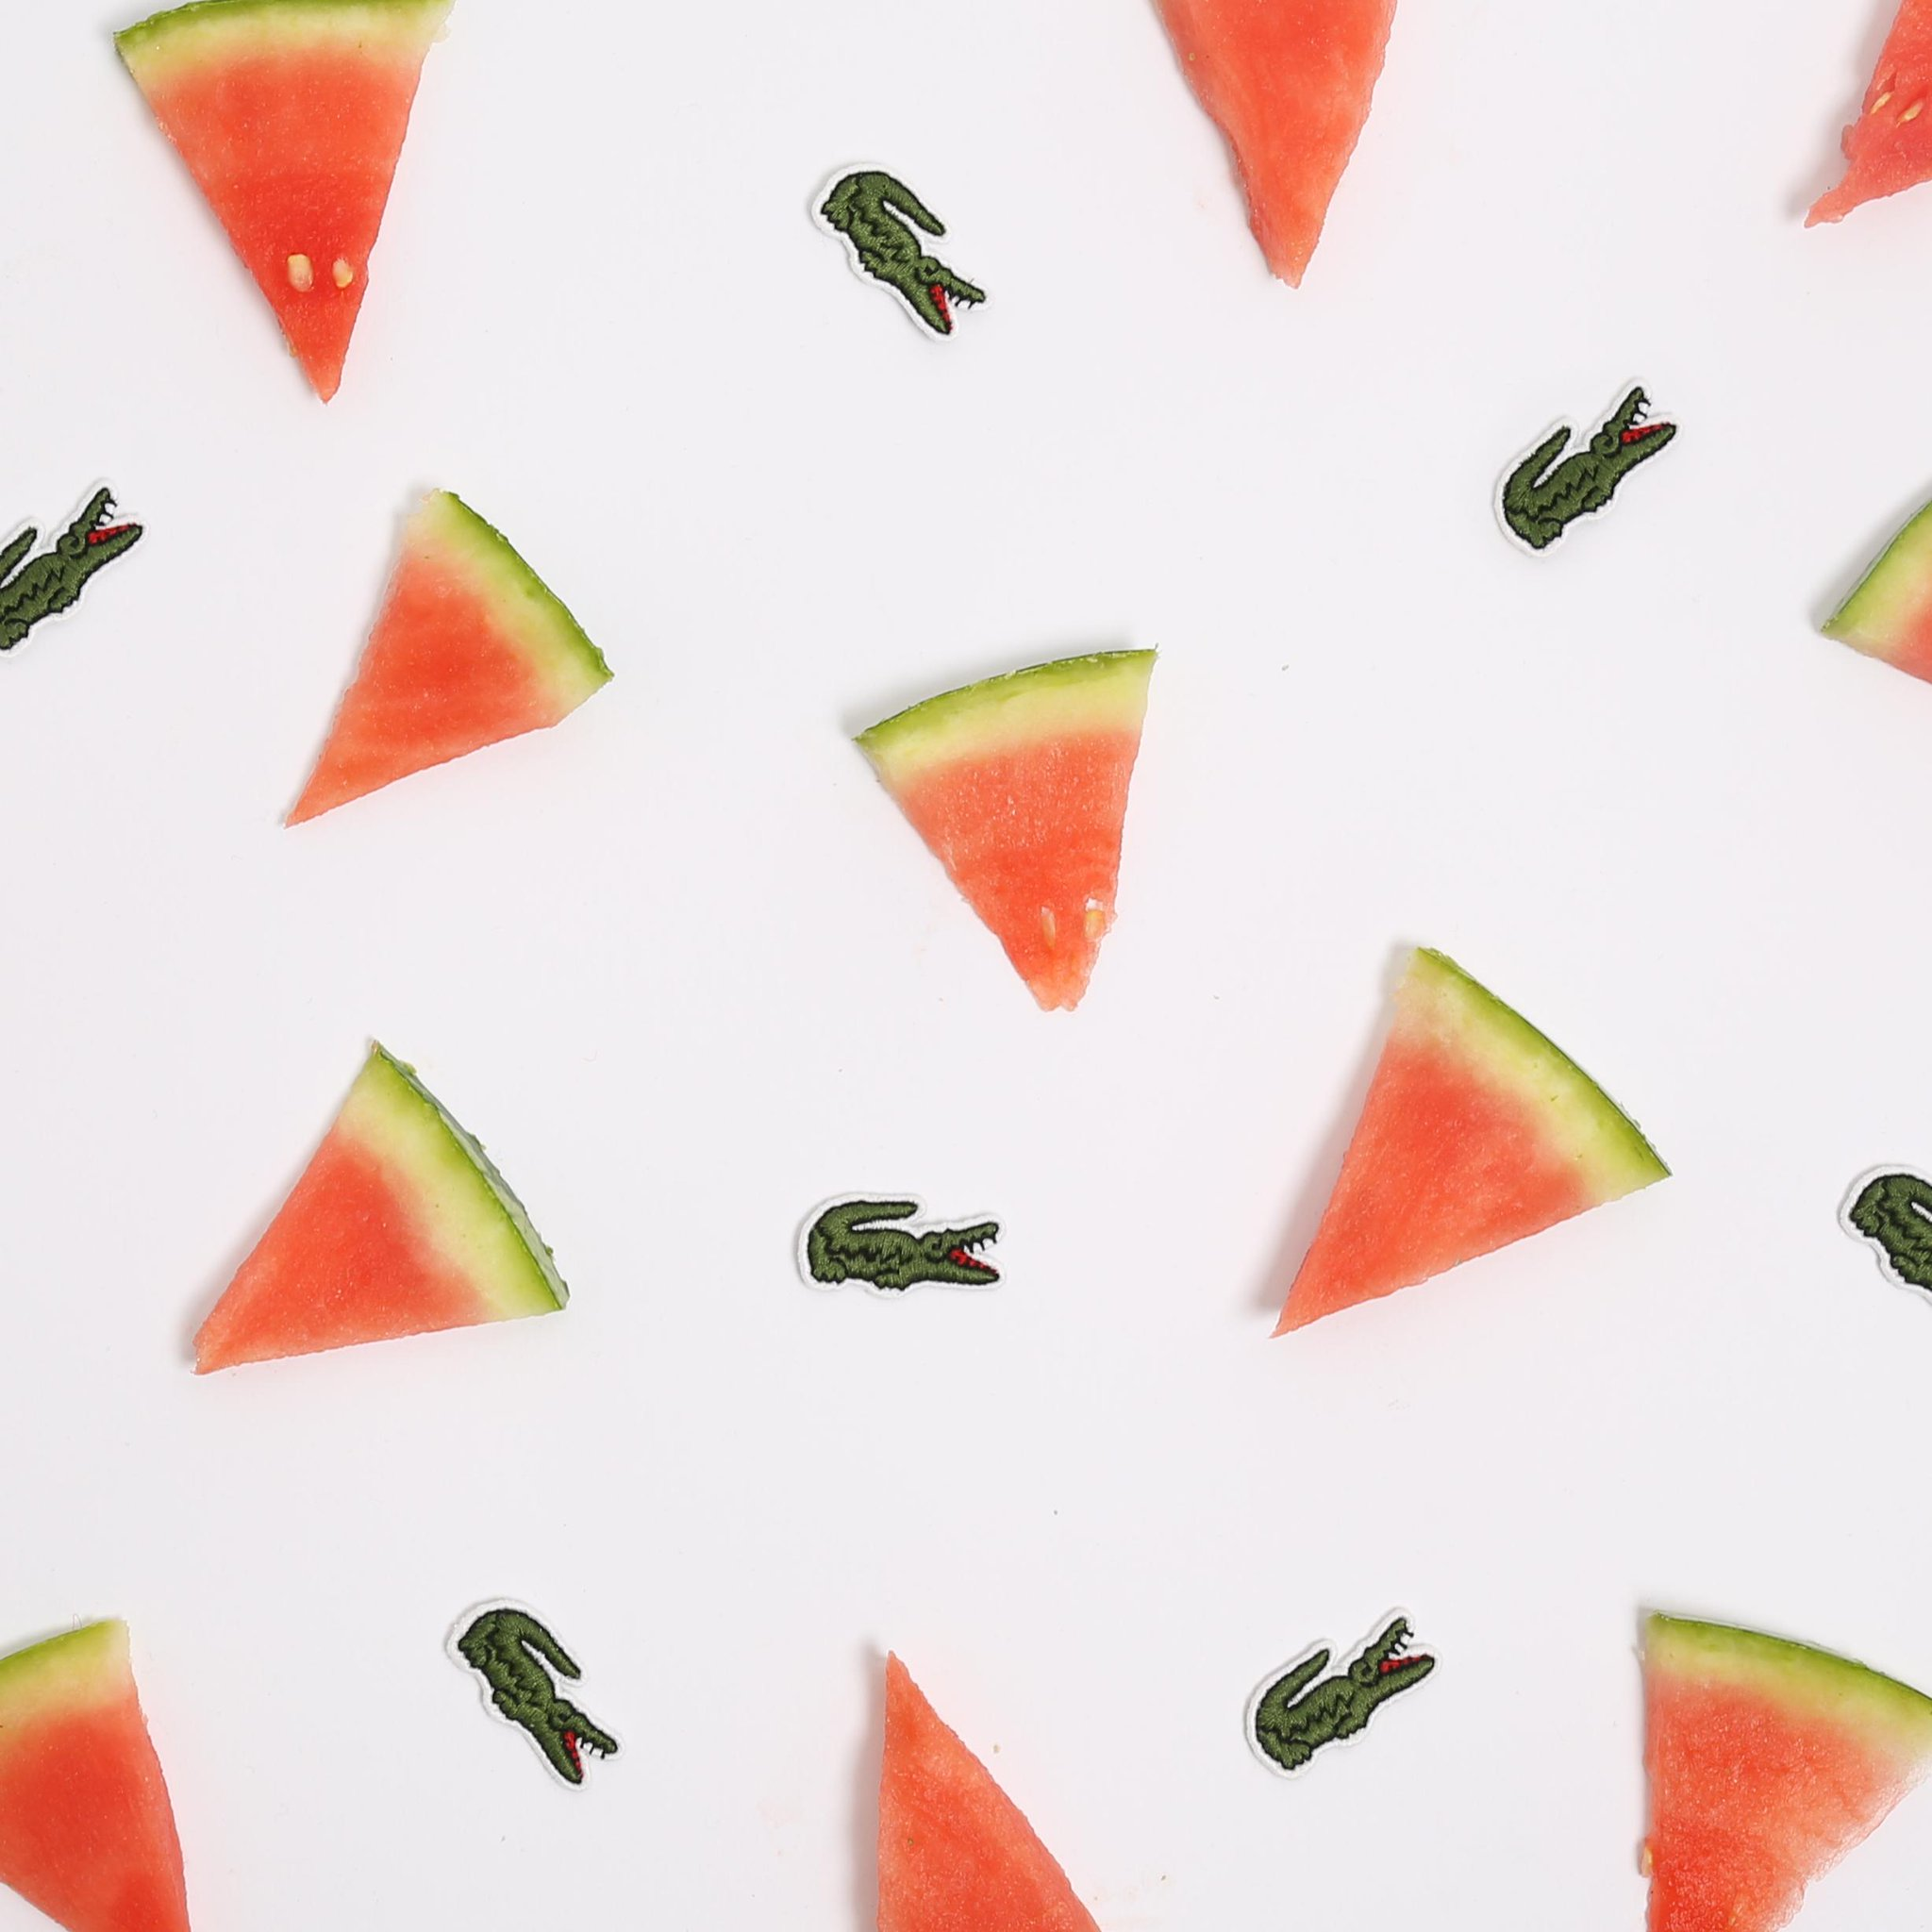 Just because it's #NationalWatermelonDay. Have a great day everyone! http://t.co/ic6KG8xOp4